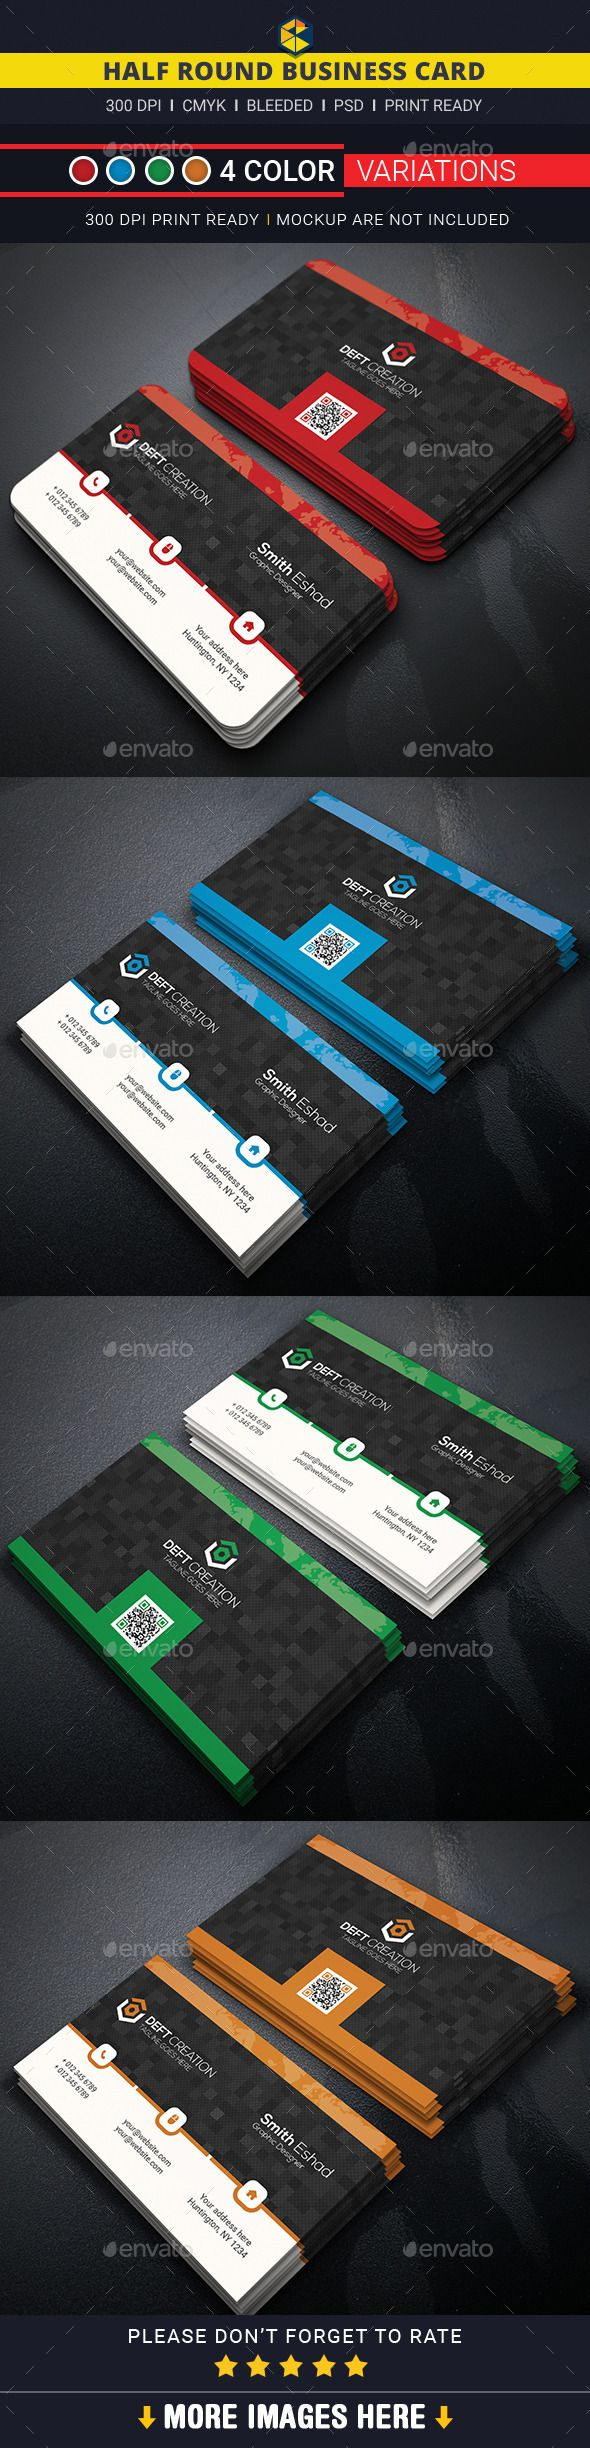 Best 25 round business cards ideas on pinterest circle business half round business card template design download httpgraphicriver reheart Image collections